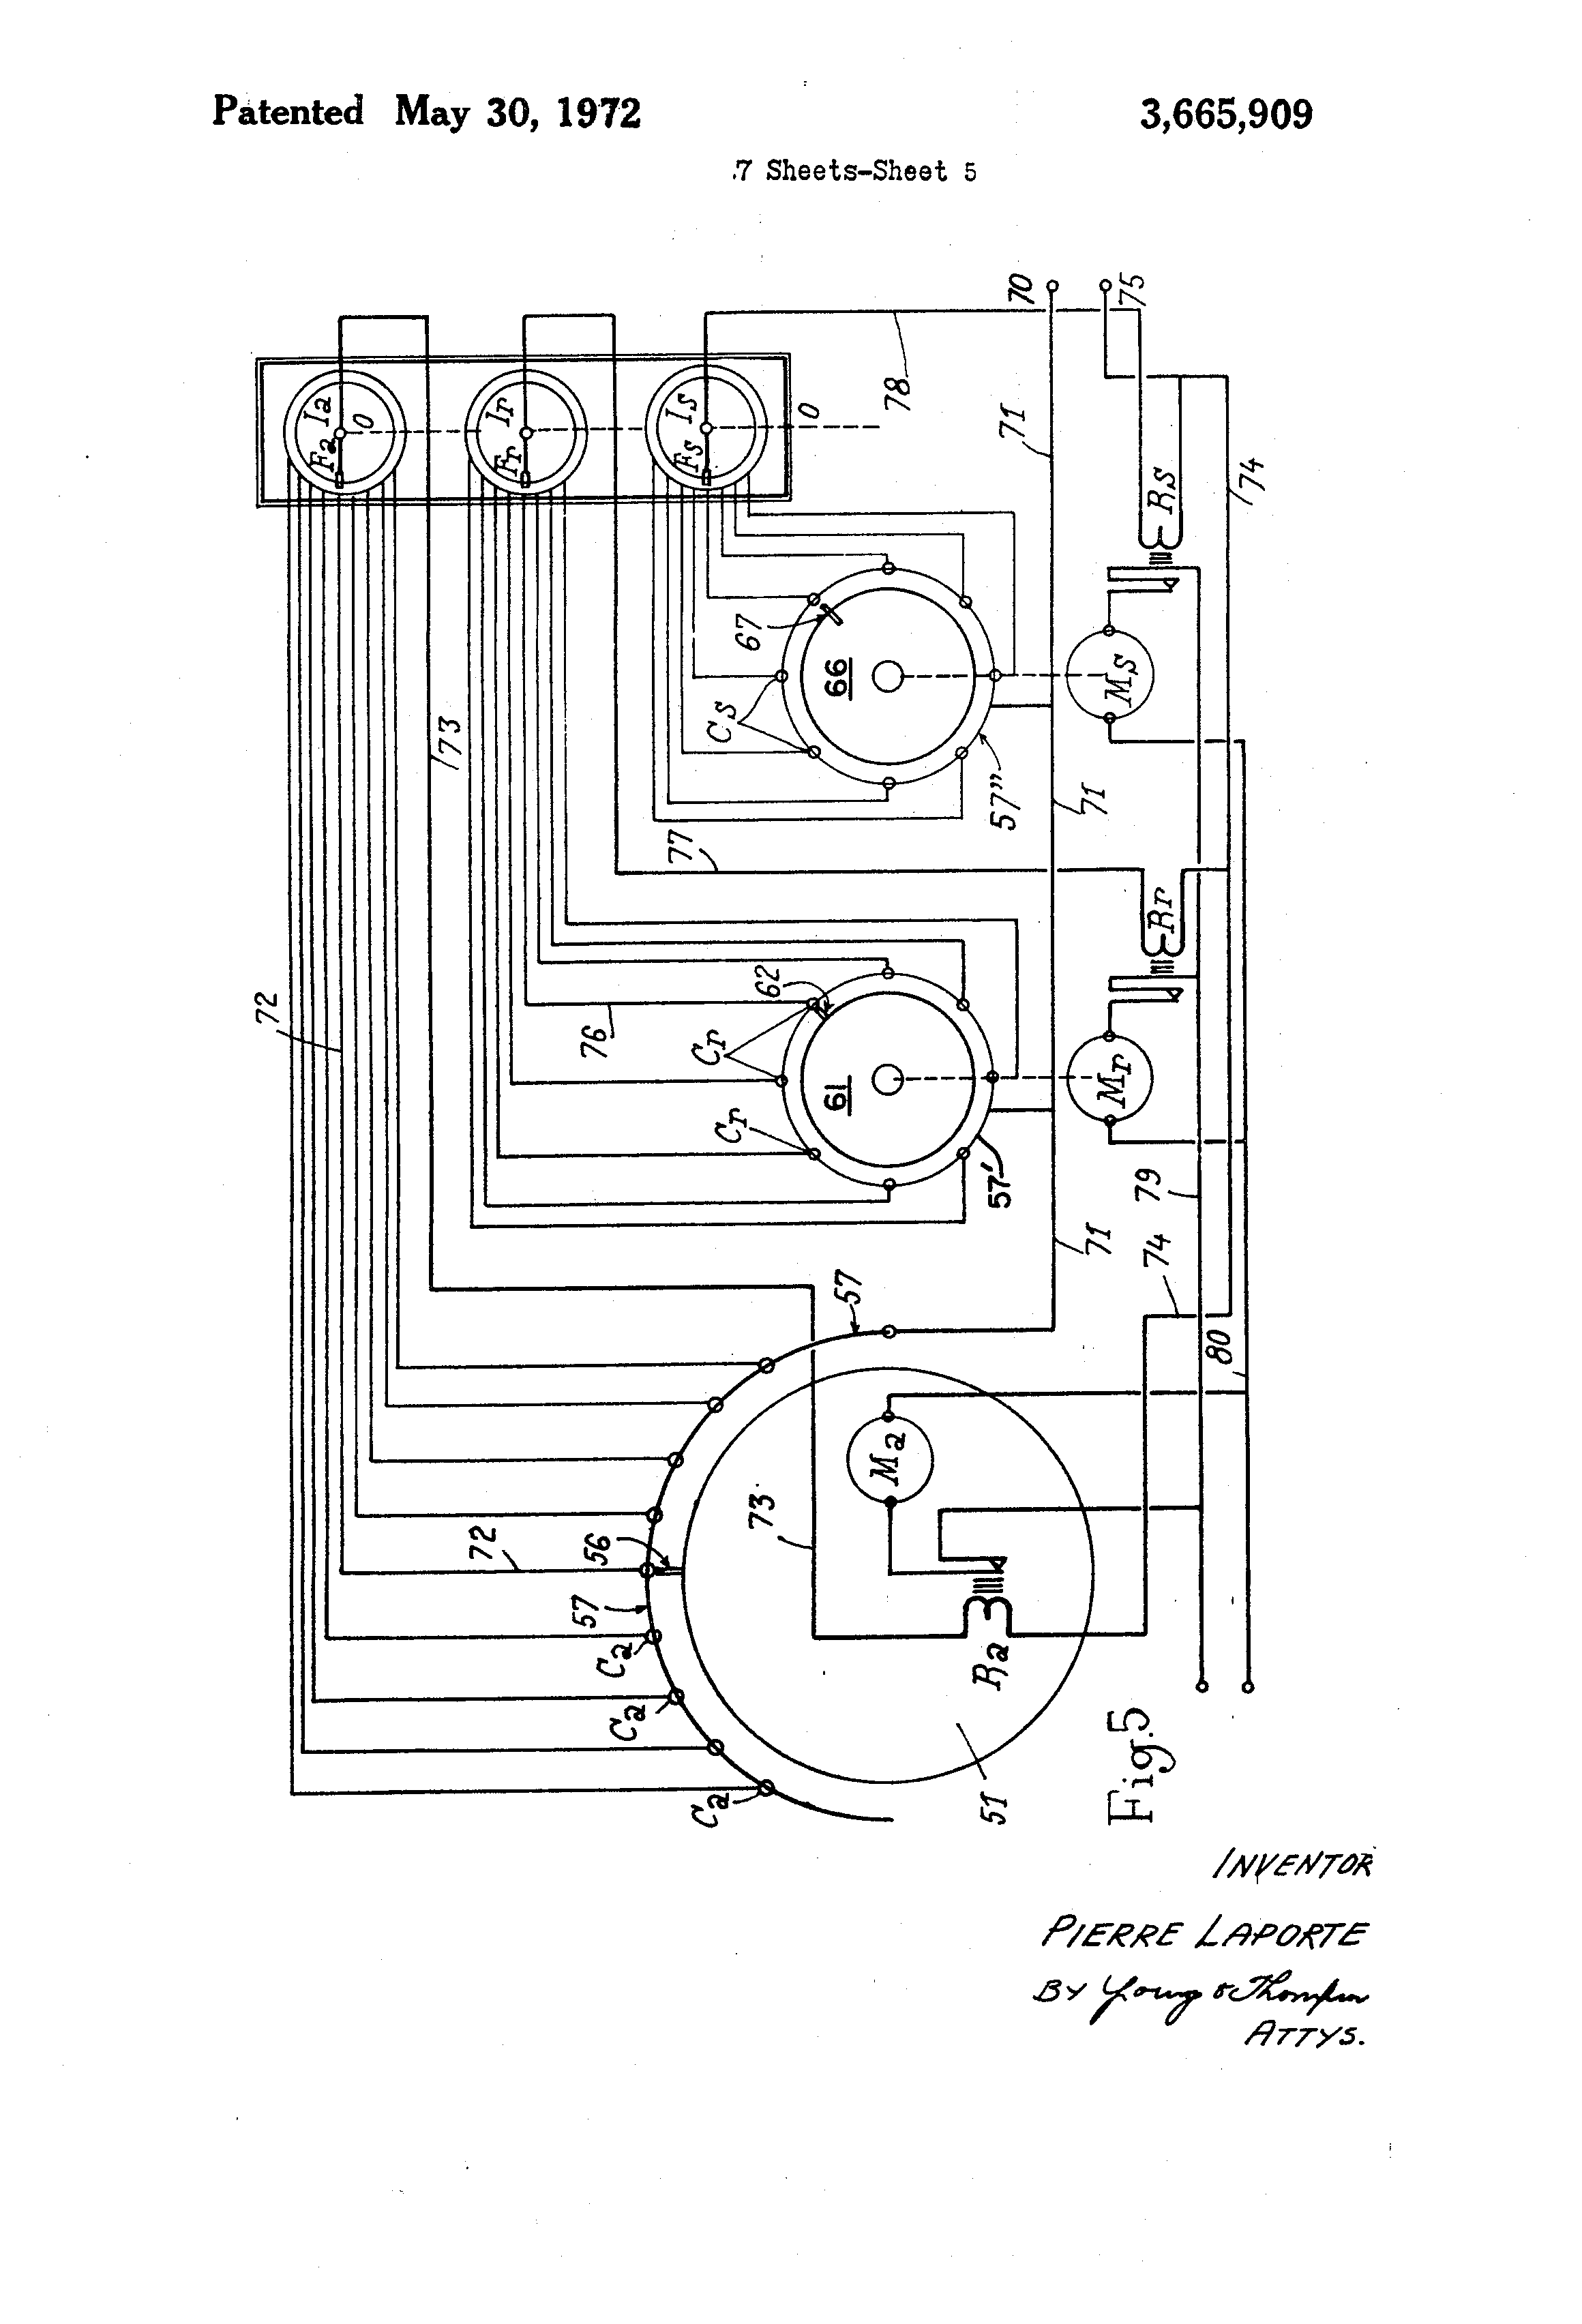 US3665909 5 patent us3665909 apparatus controlling the mechanism throwing laporte traps wiring diagram at bayanpartner.co